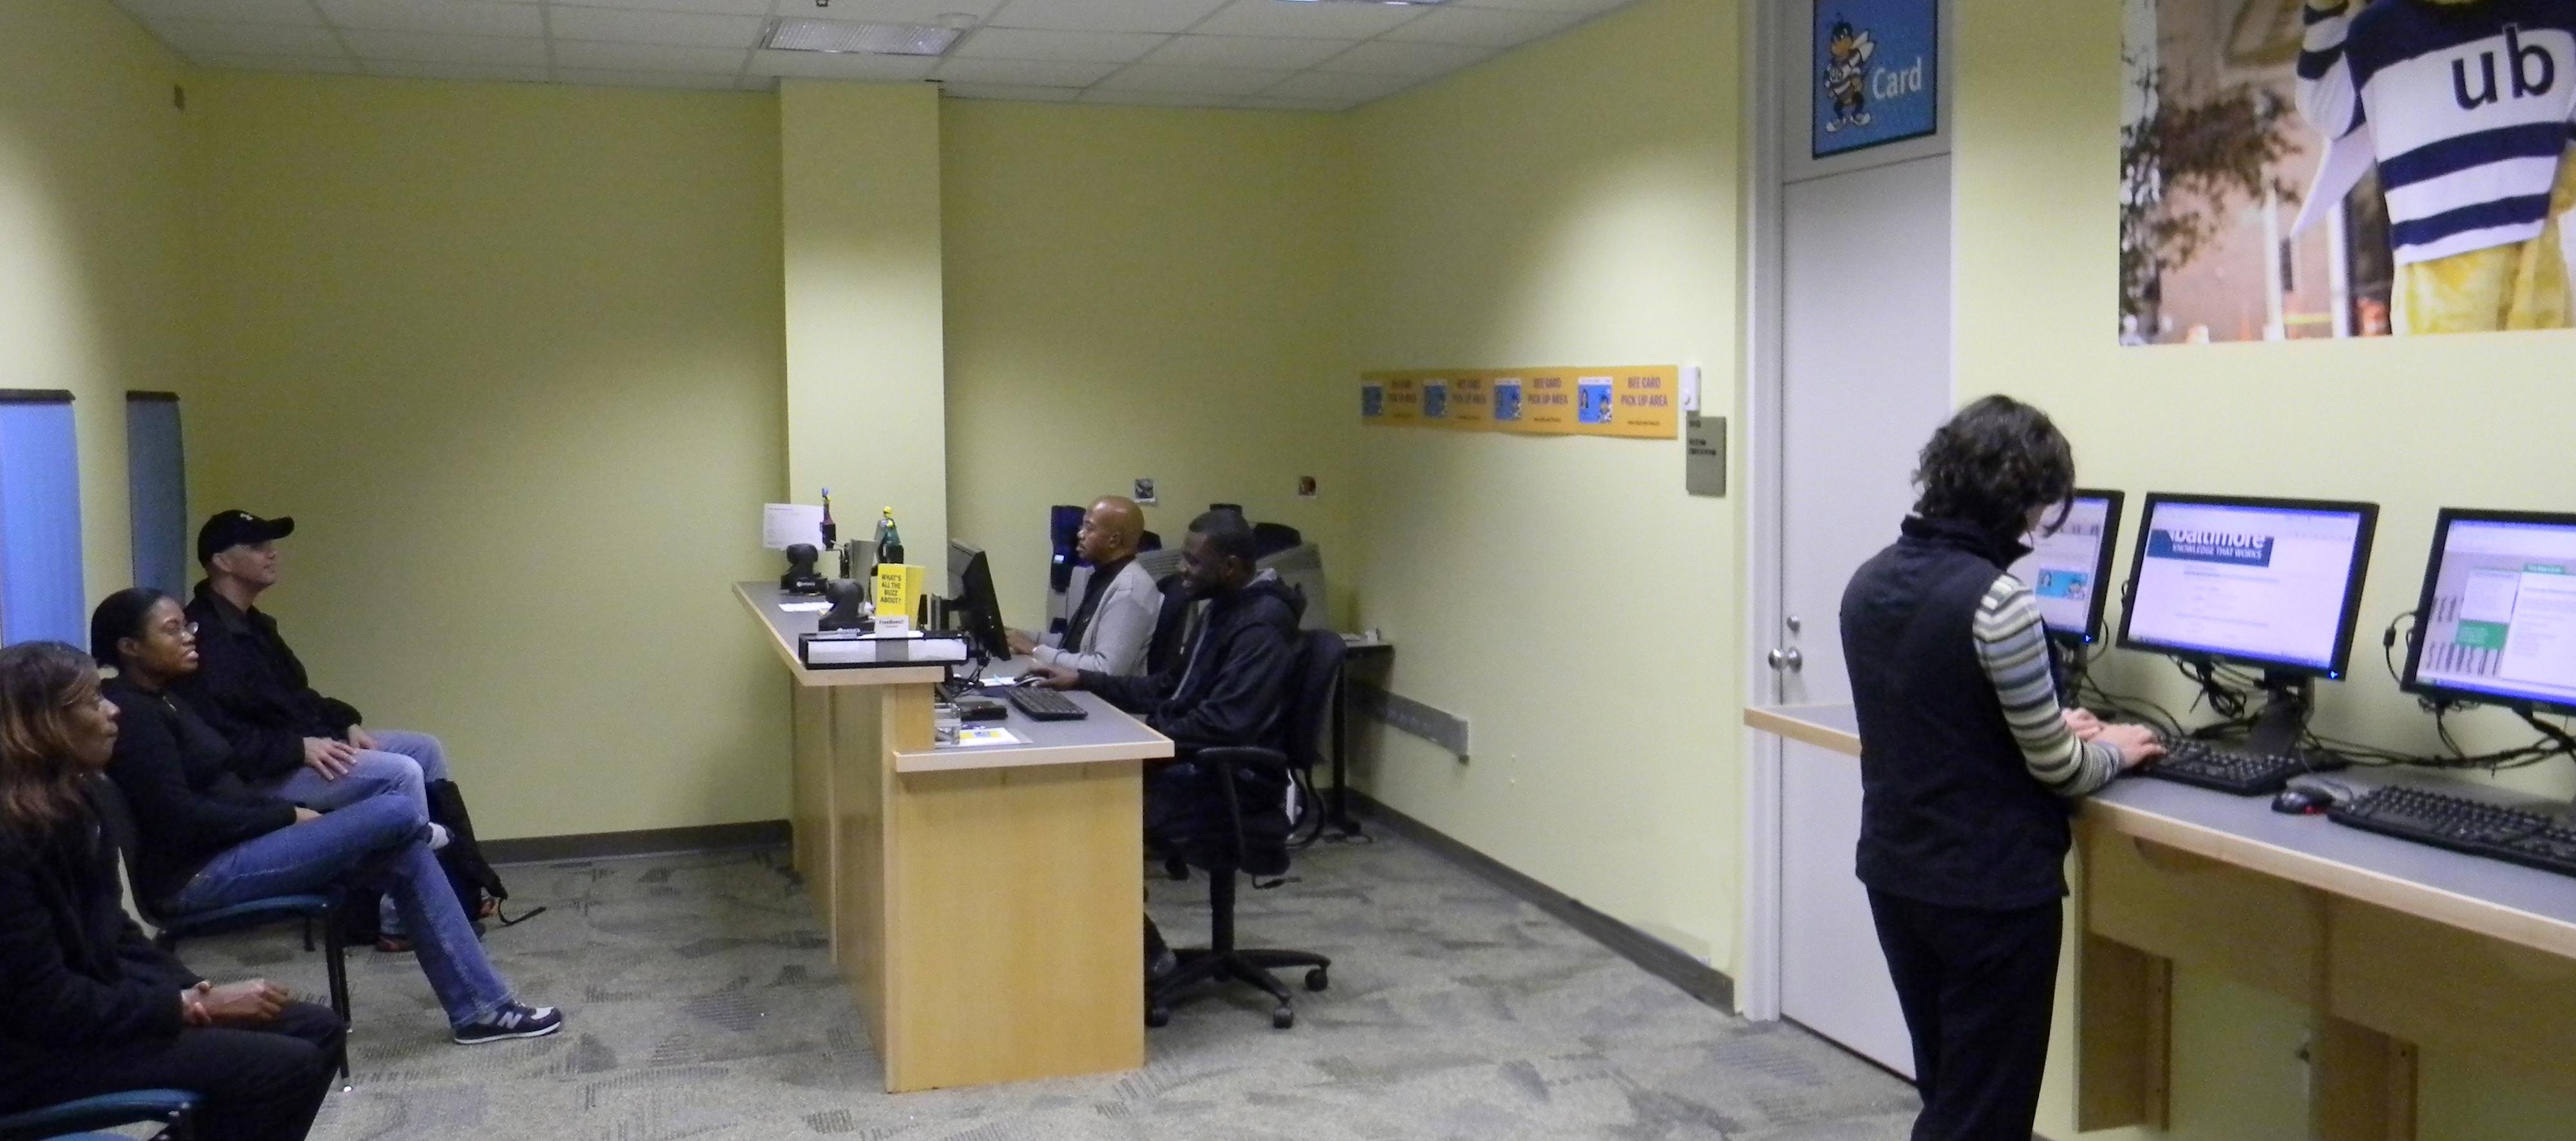 UB Bee Card Office